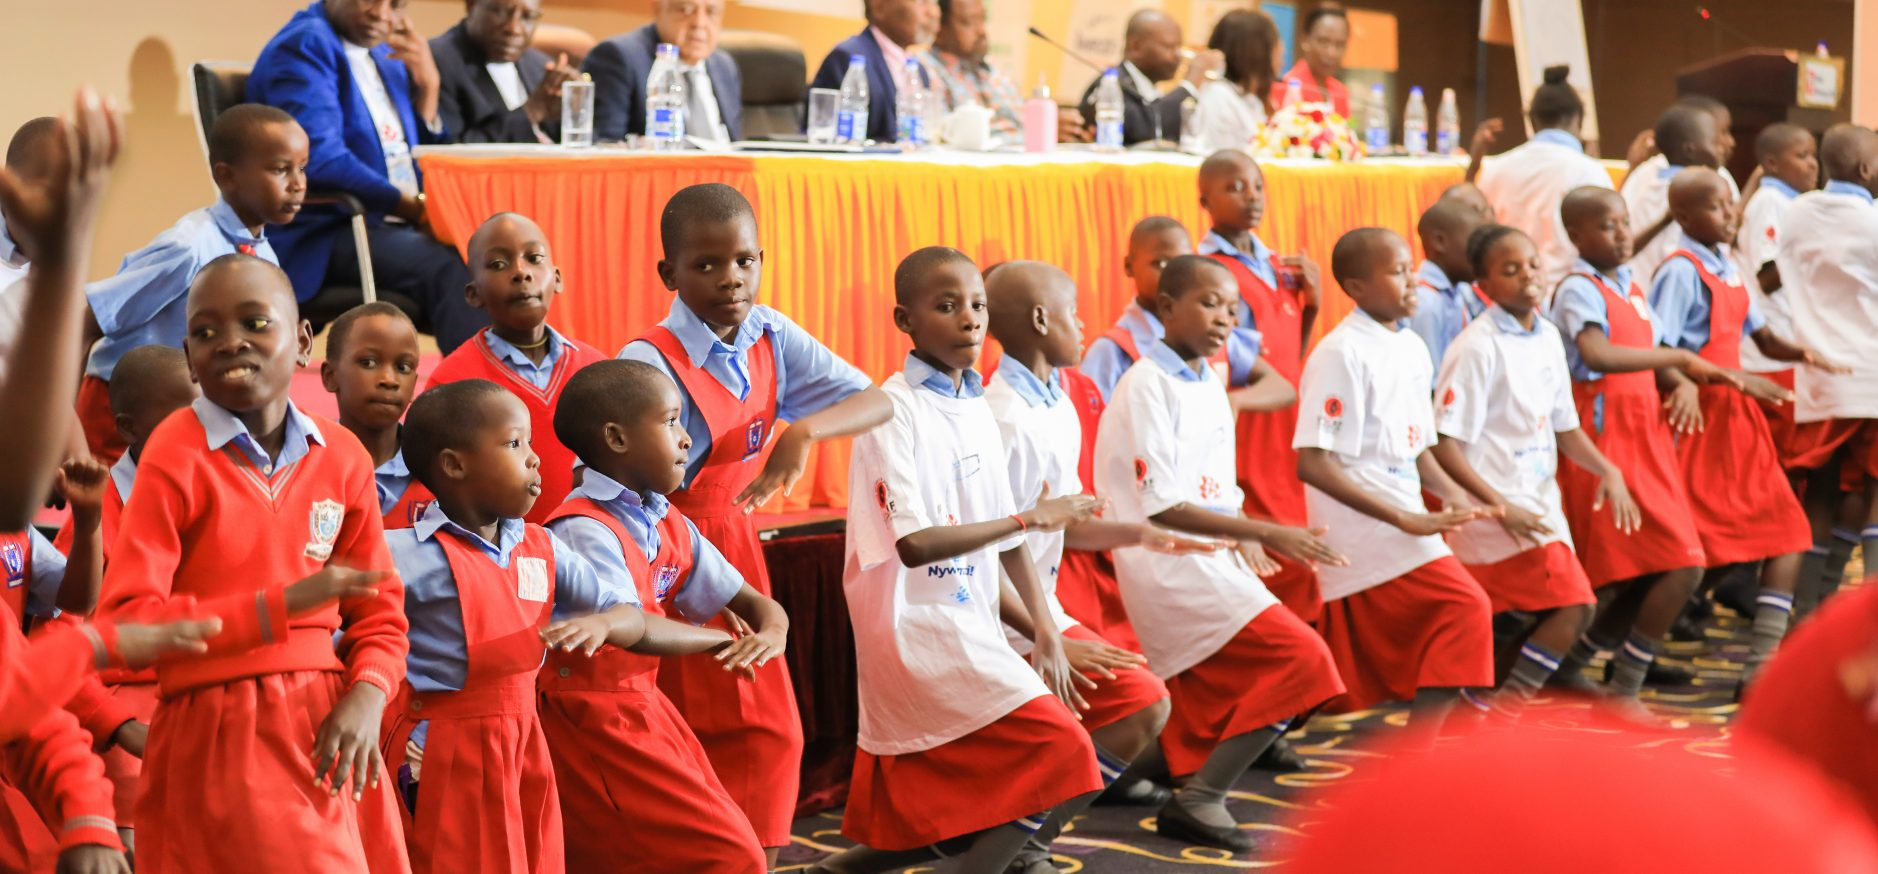 PUPILS FROM LUWERO PRIMARY SCHOOL ENTERTAINING THE GUESTS AT THE 5TH SICKLE CELL CONFERNCE